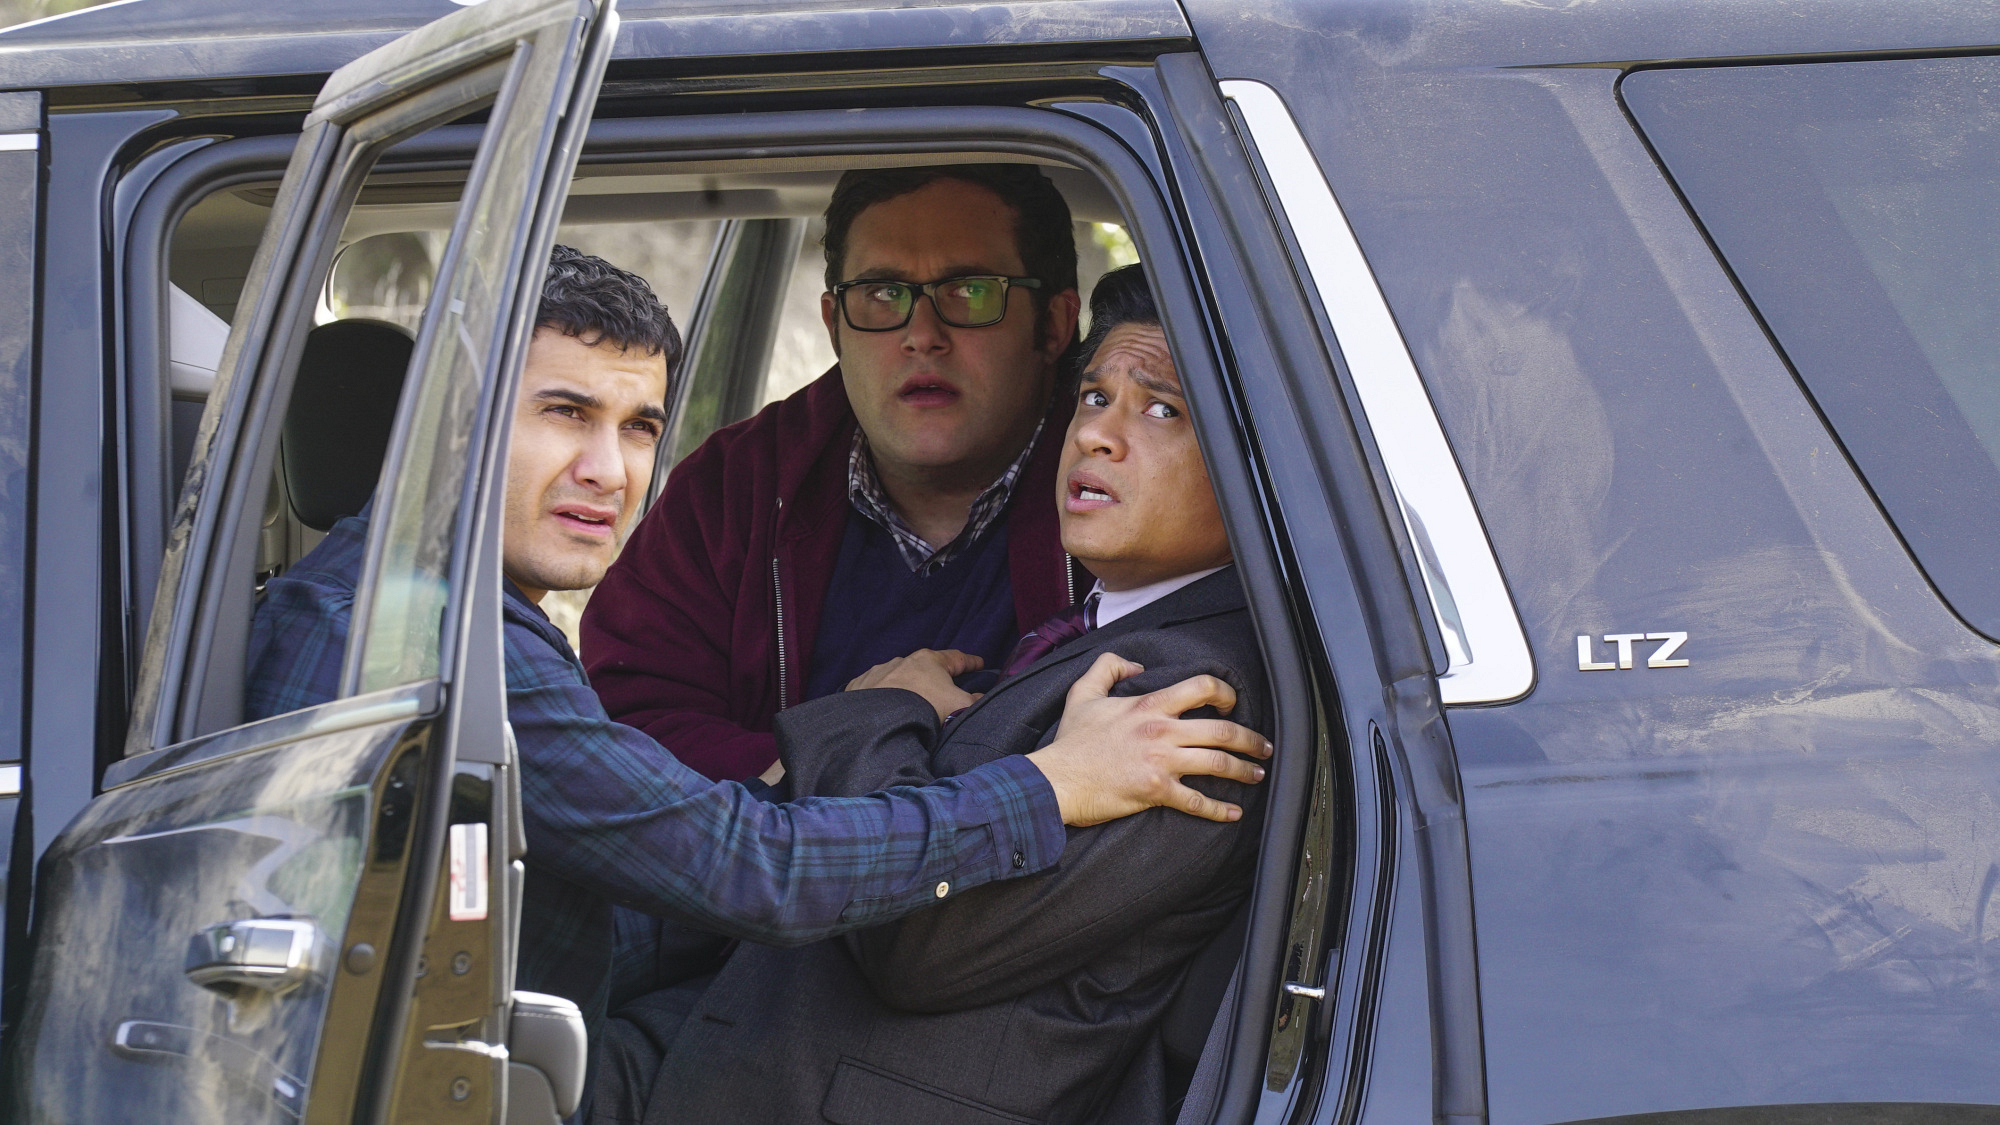 Elyes Gabel as Walter O'Brien and Ari Stidham as Sylvester Dodd